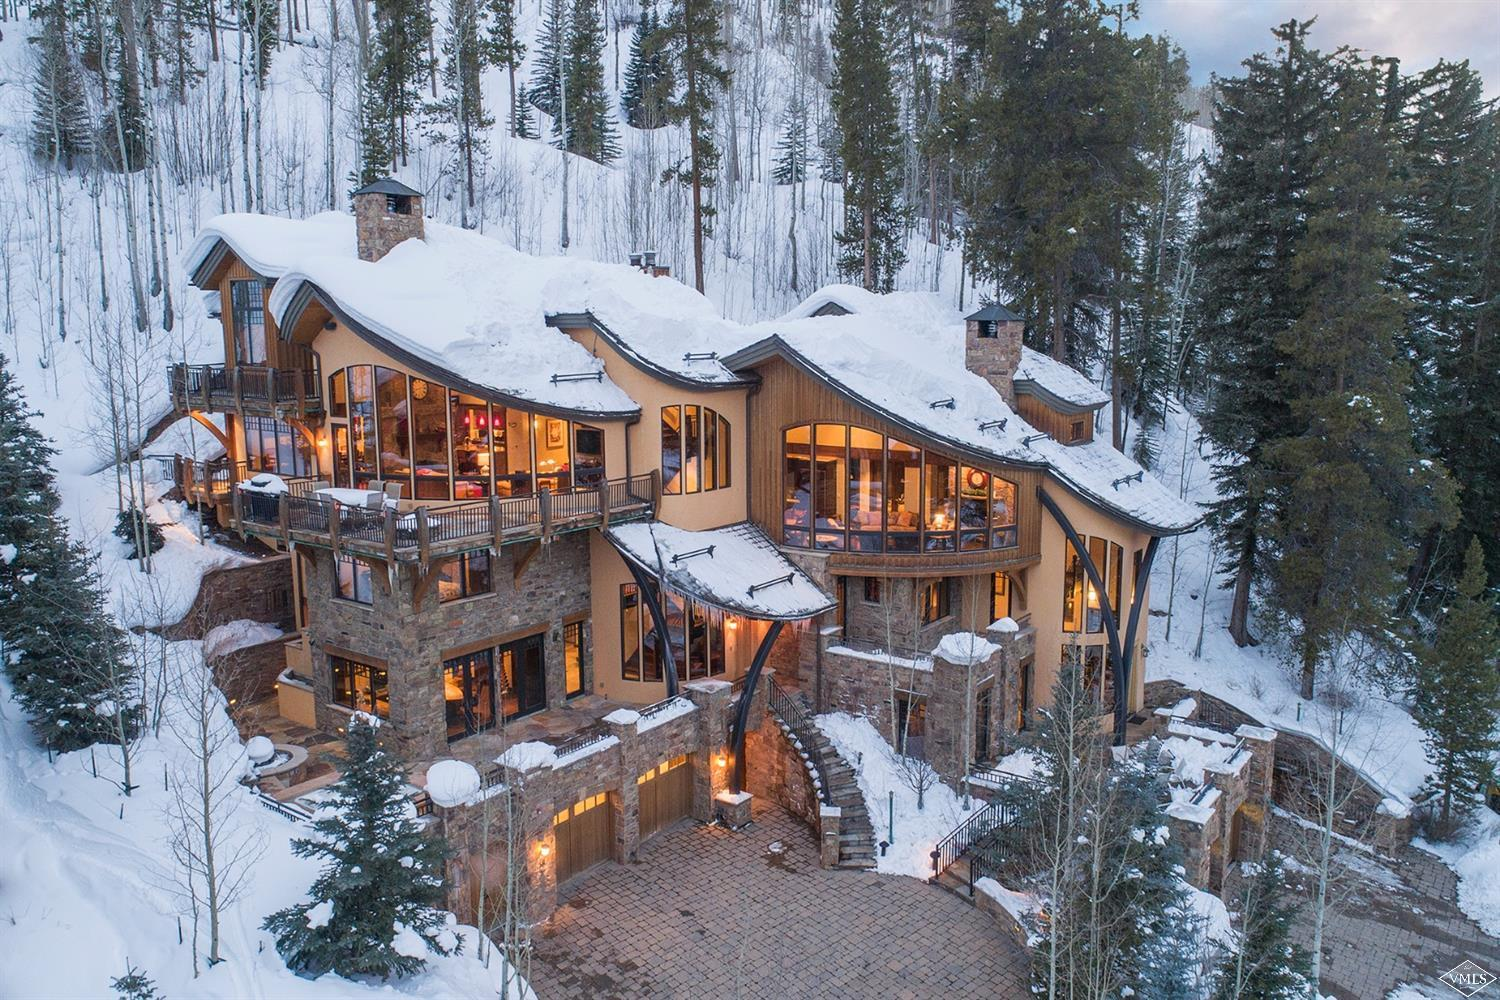 Located in the coveted Forest Road neighborhood, this home is steps away from the slopes, walking distance to Lionshead Village, and offers expansive views to the east looking towards Gore Range and Bald Mountain, generous natural light, and a high emphasis on privacy backing up to White River National Forest. 5-beds, 6-baths, media room, chef's kitchen, vaulted ceilings in the living room and master suite, ski storage room,and elevator. Both sides of duplex available for purchase.